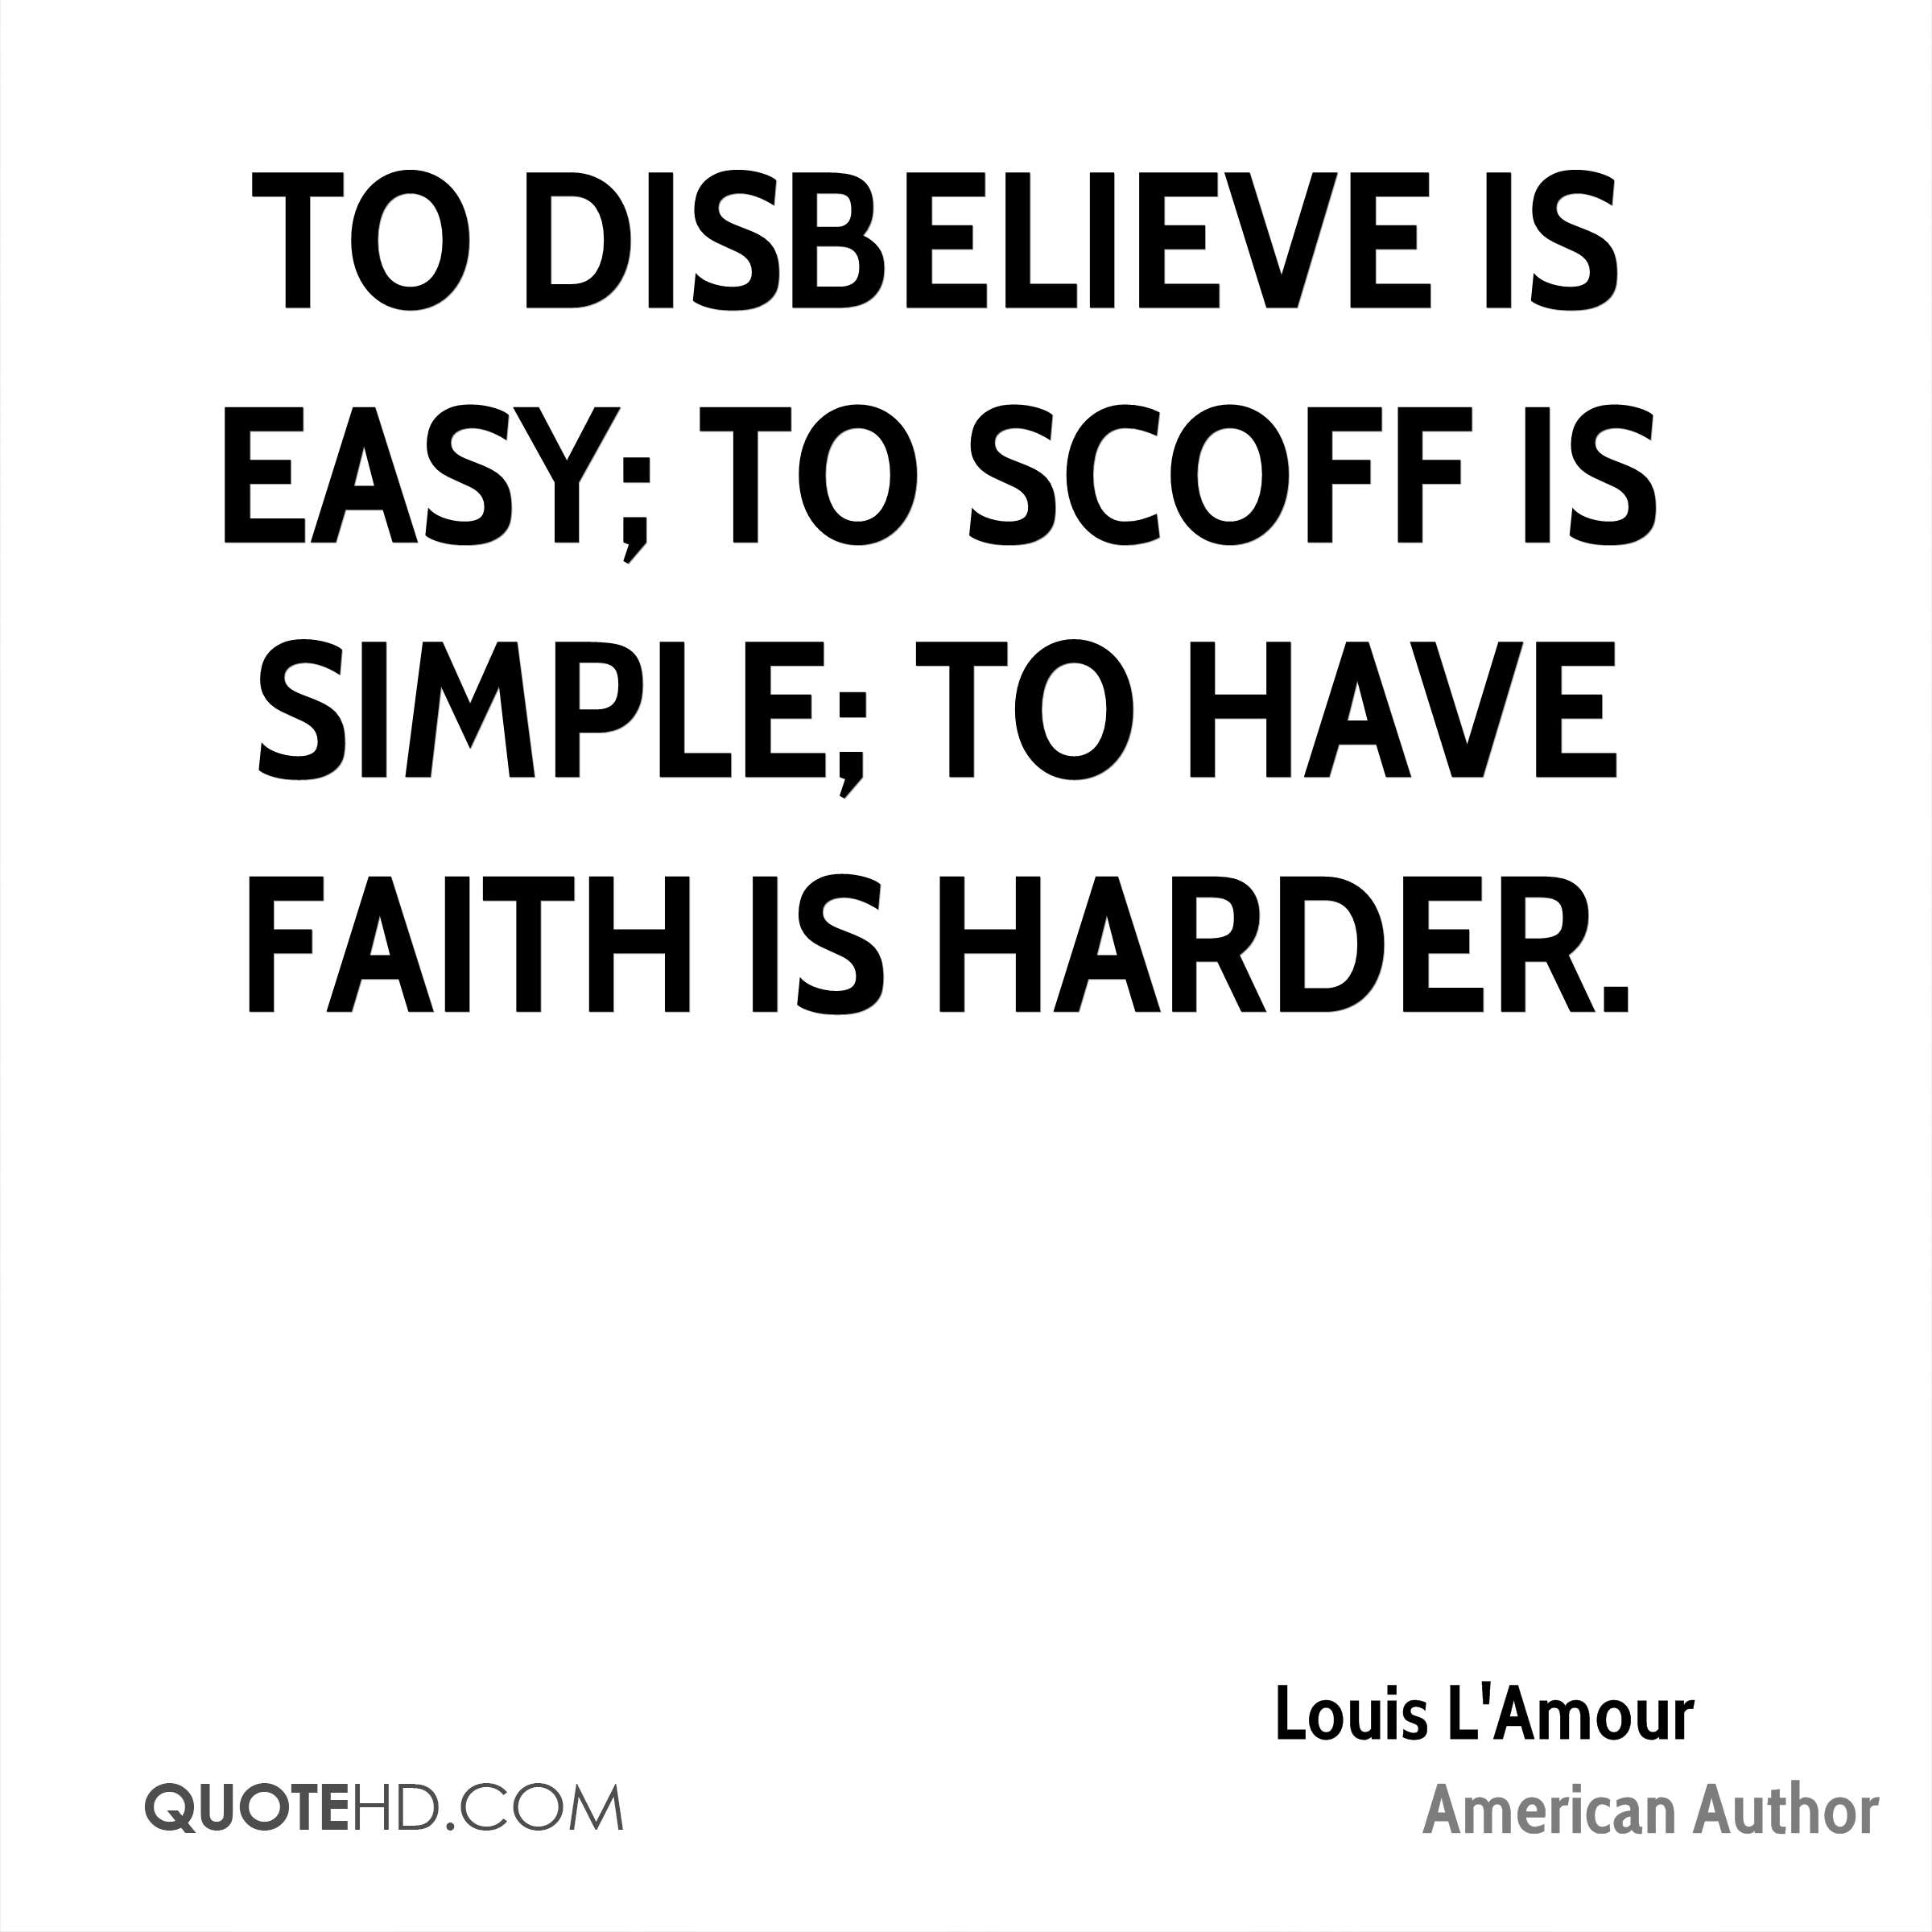 Quotes About Anger And Rage: Louis L'Amour Faith Quotes